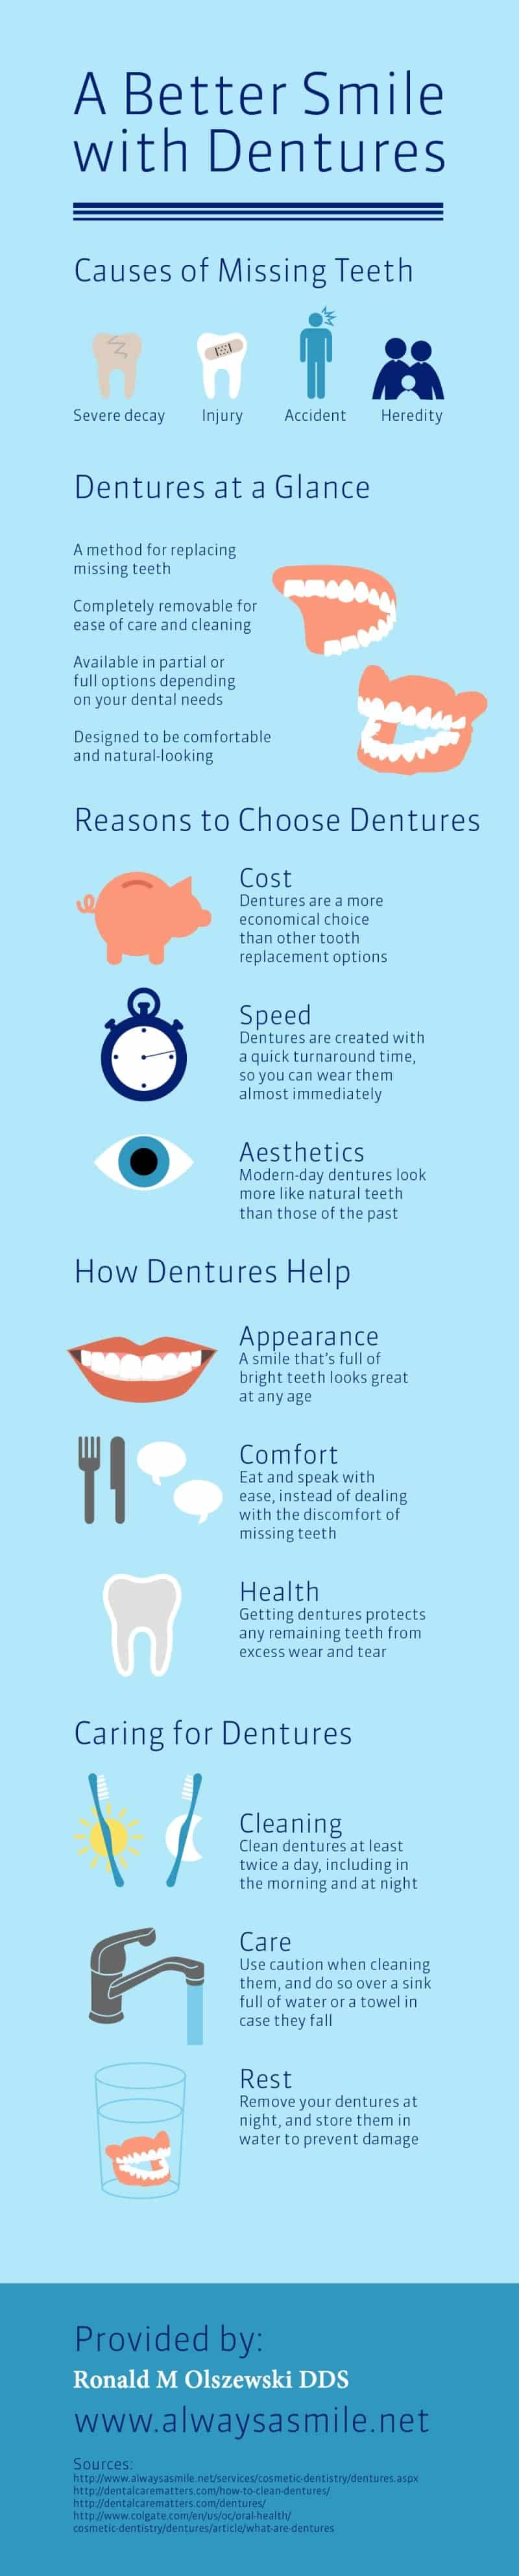 A Better Smile with Dentures